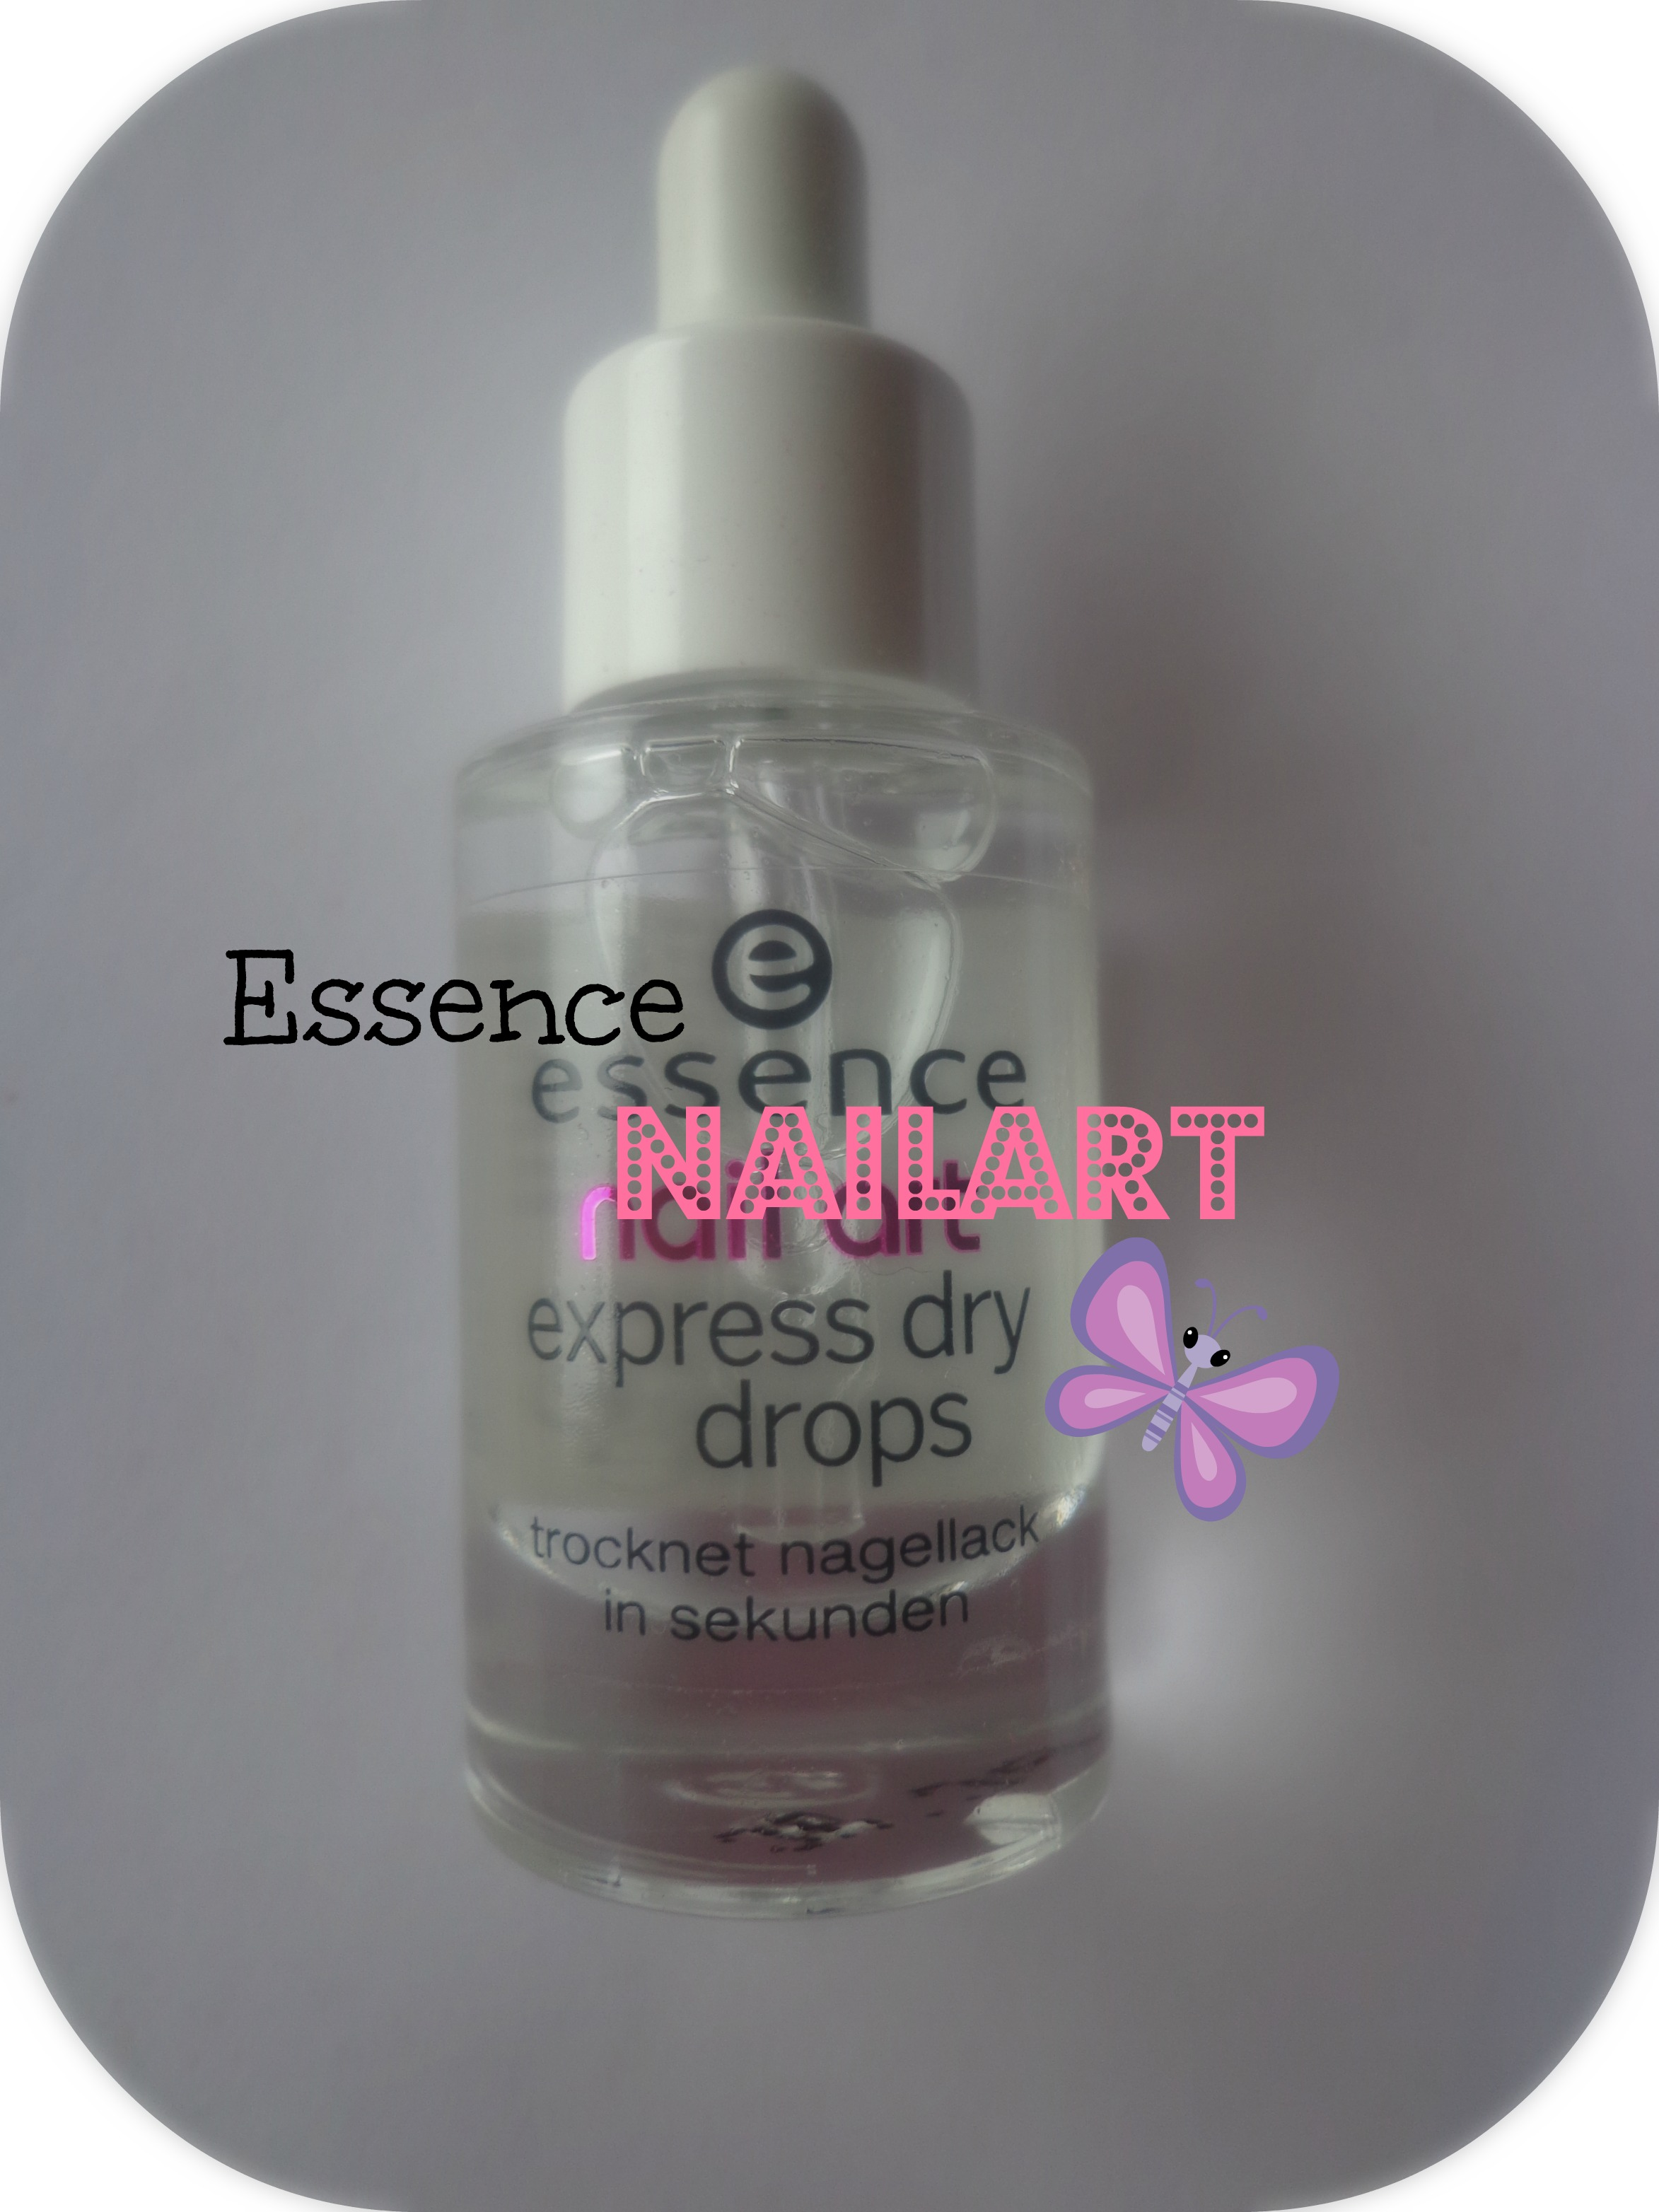 Essence Express Dry Drops Review